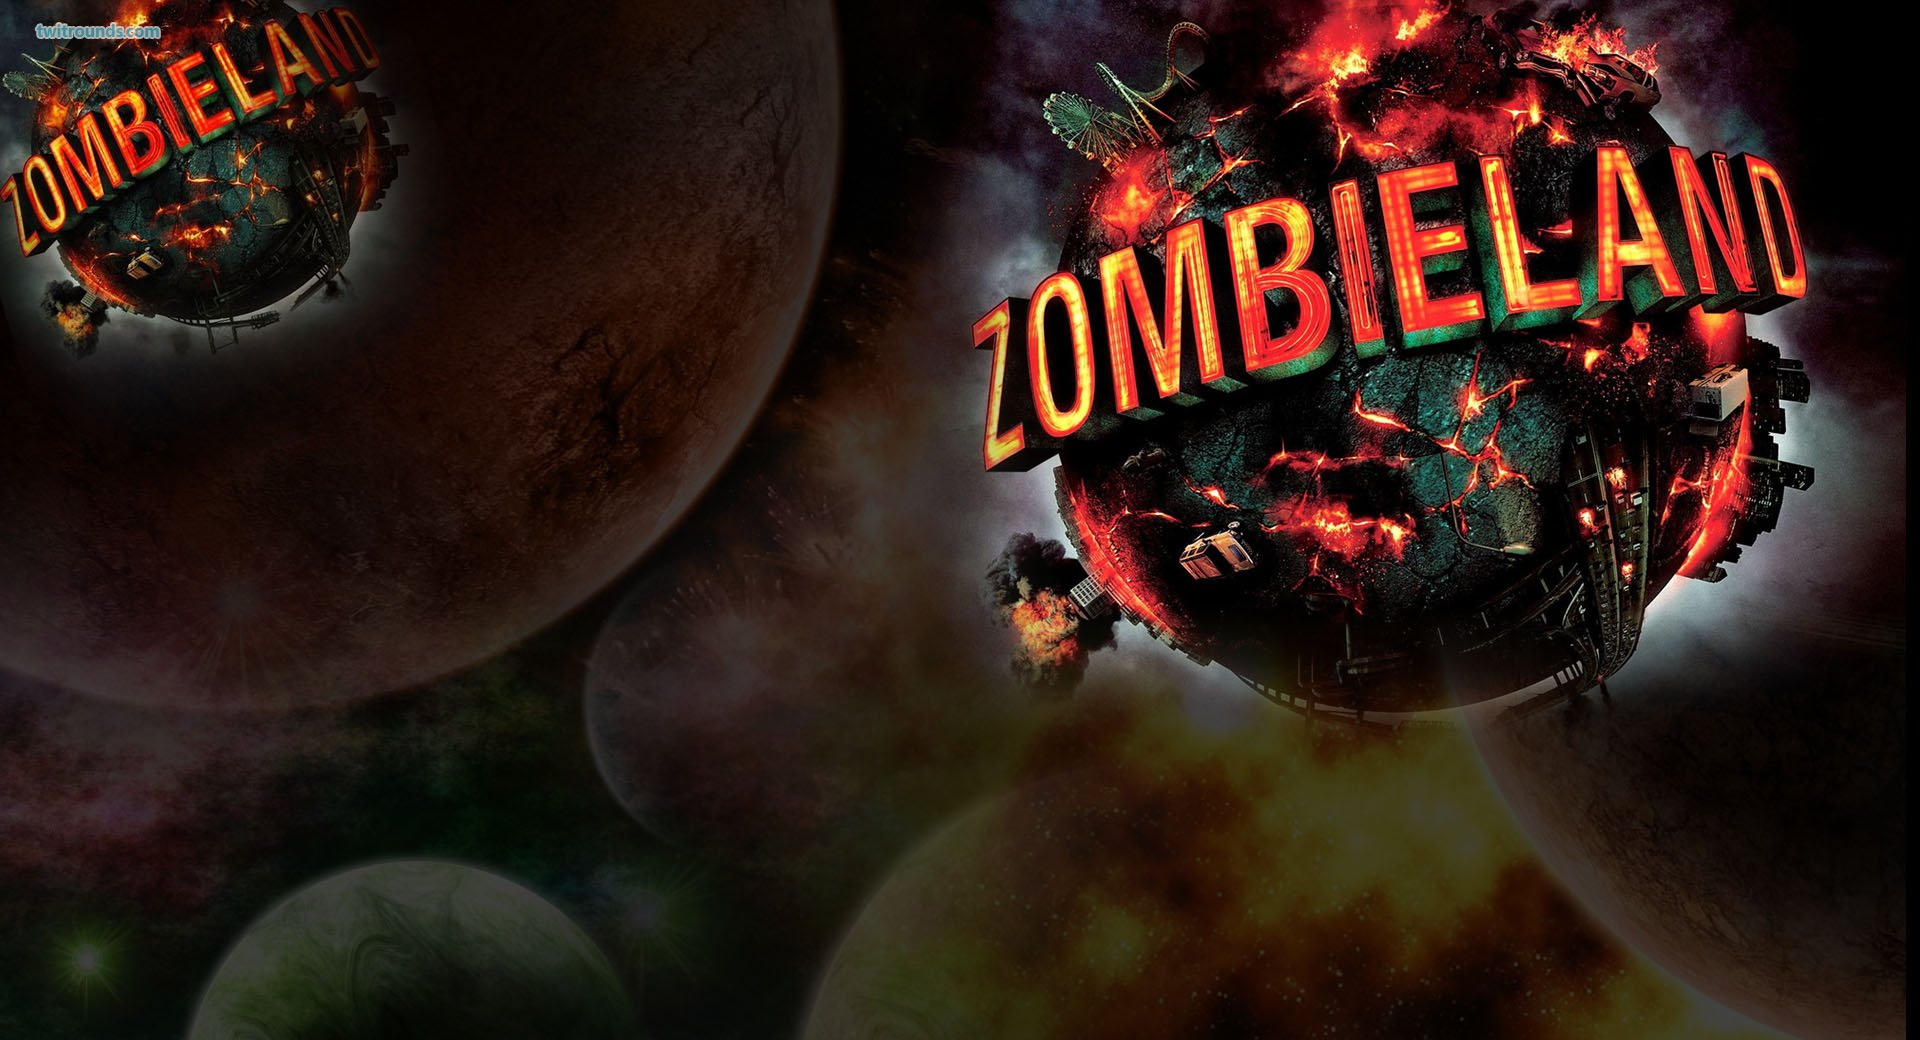 Zombieland rules wallpaper